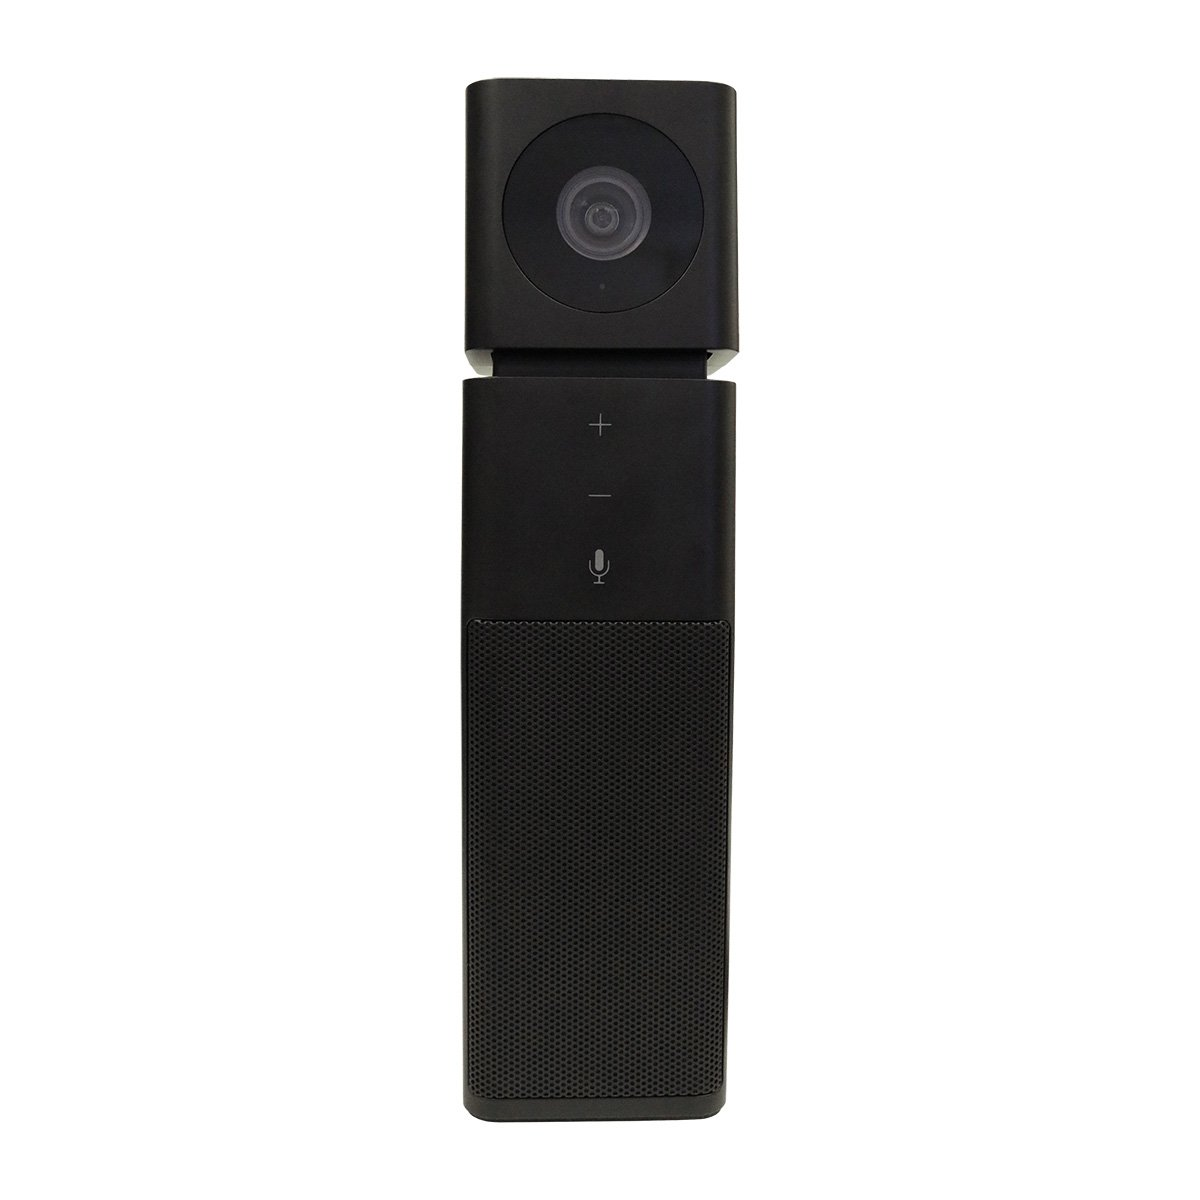 HuddleCamHD GO - 1080P, 110 Degree FOV USB Conferencing Camera with Built In Microphone and Speaker